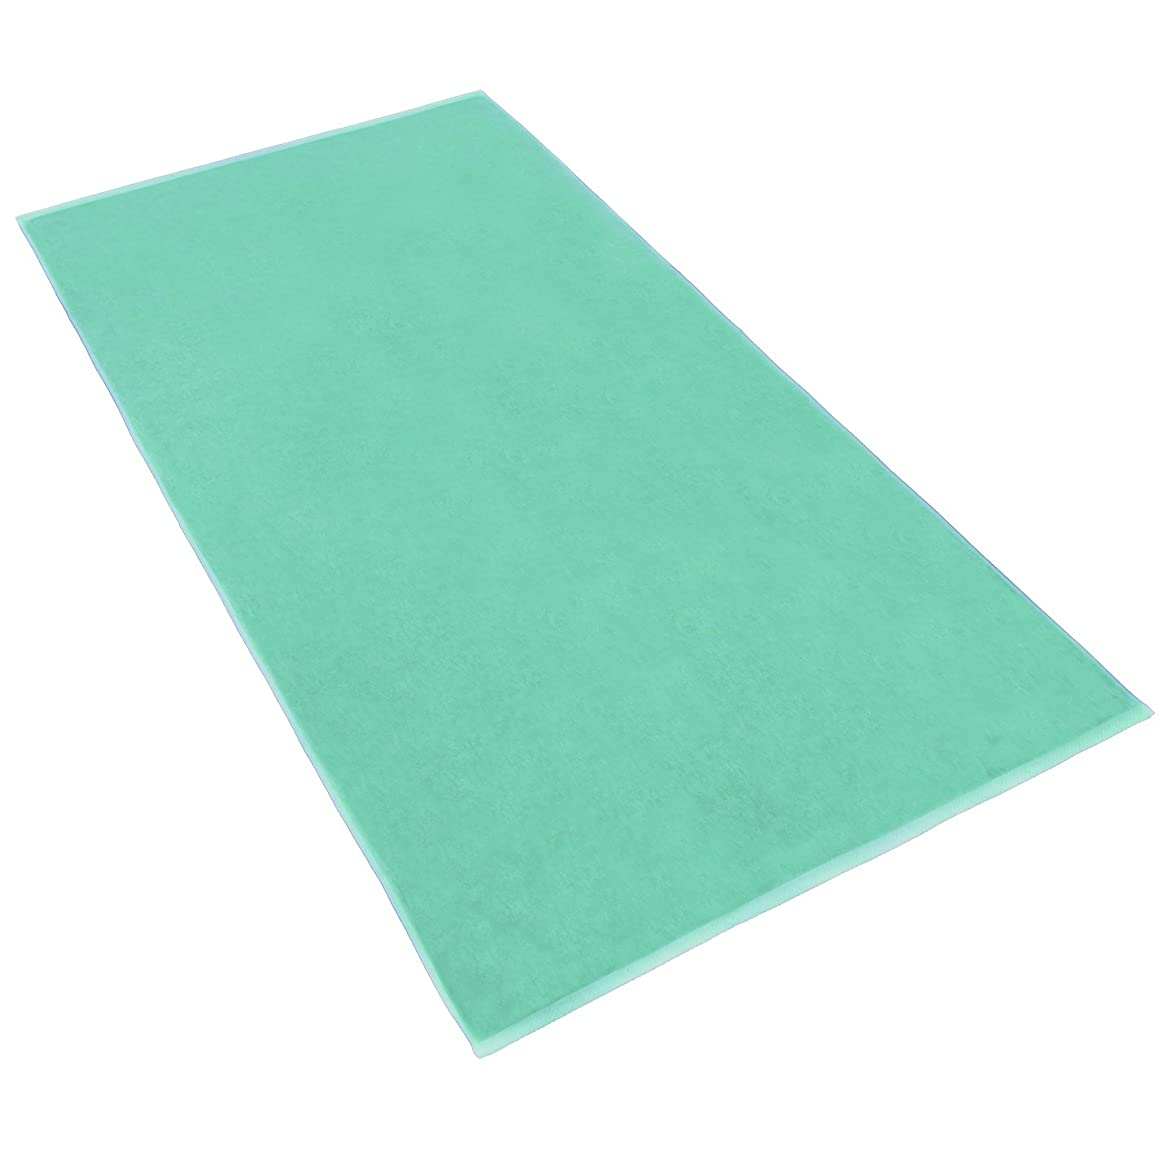 要件十億逸脱(1) - Terry Bath Sheet/Beach Blanket Colour: Sea Foam